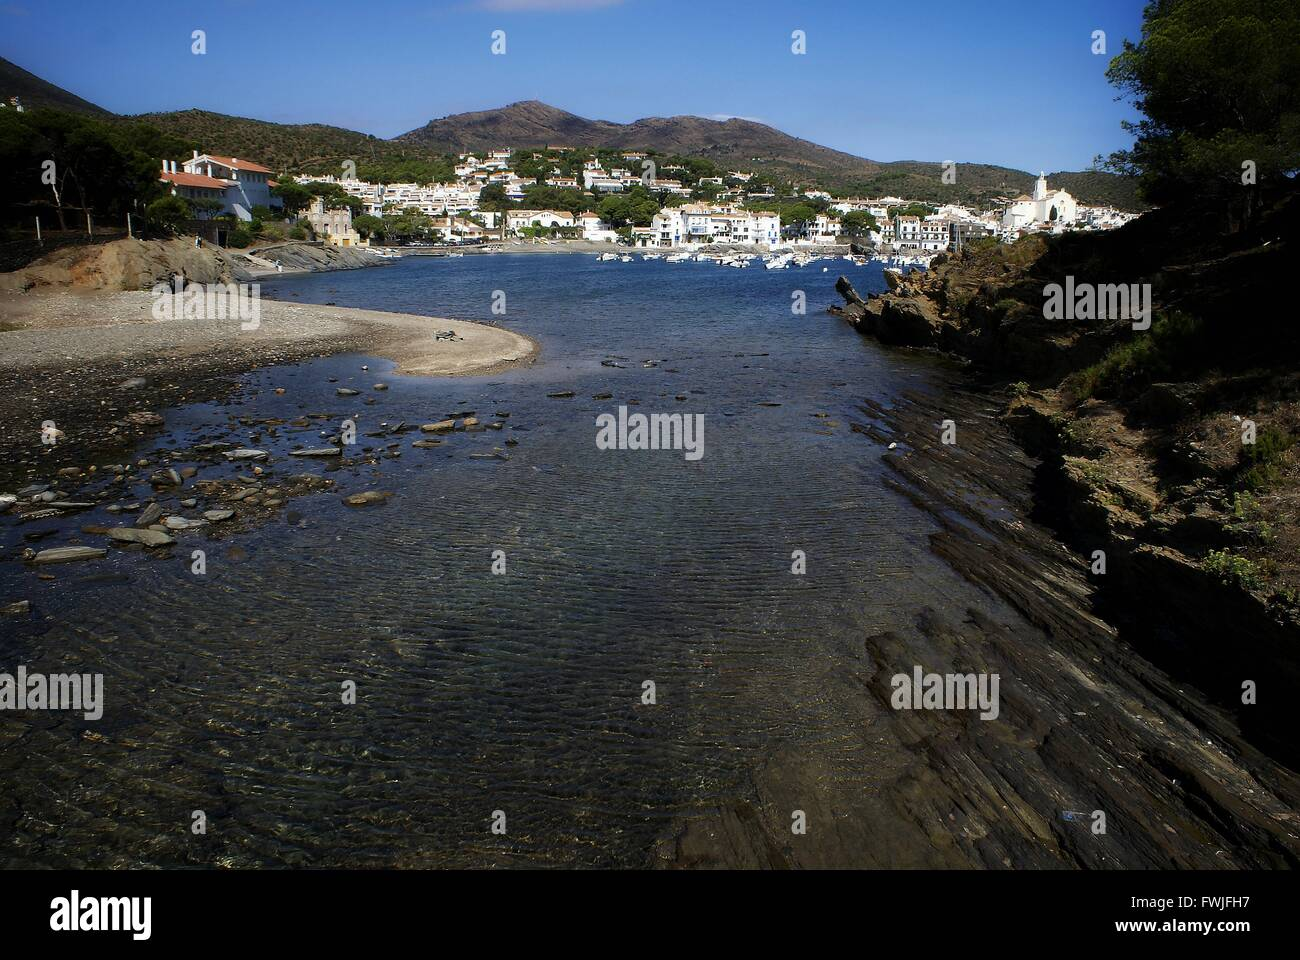 River By Houses Against Sky - Stock Image